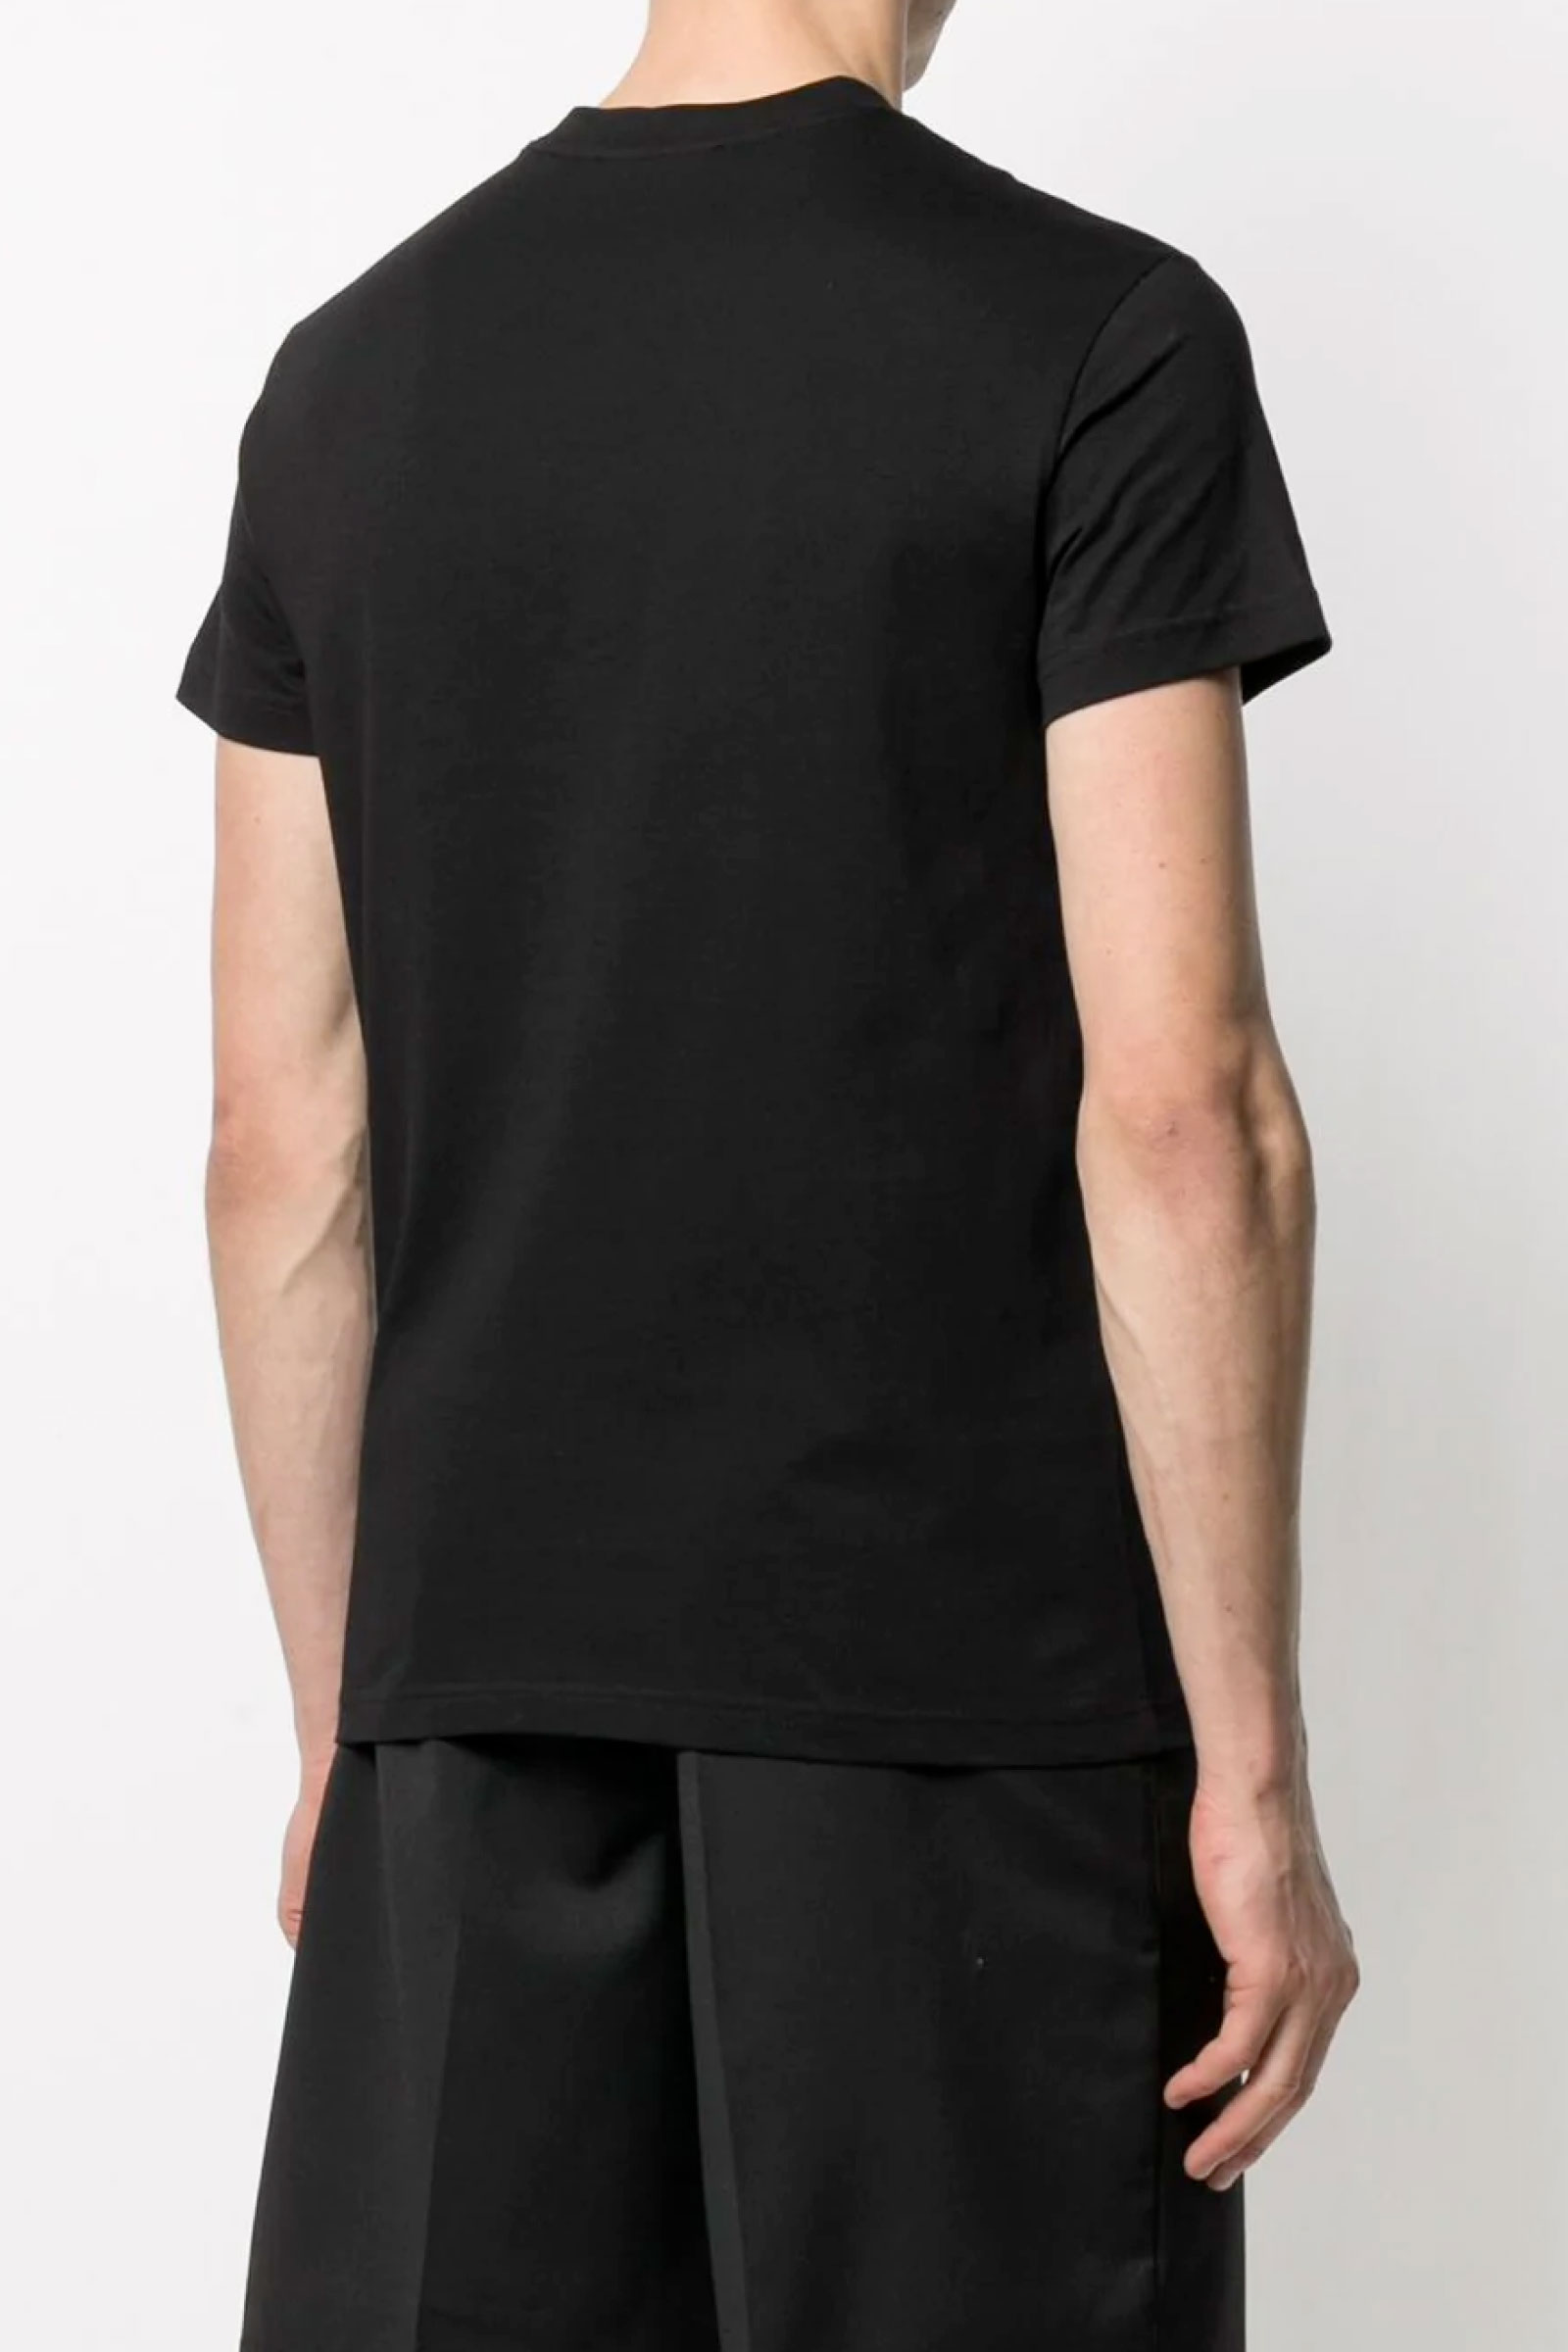 VERSACE JEANS COUTURE T-Shirt Uomo VERSACE JEANS COUTURE | T-Shirt | B3GWA7TD30319899